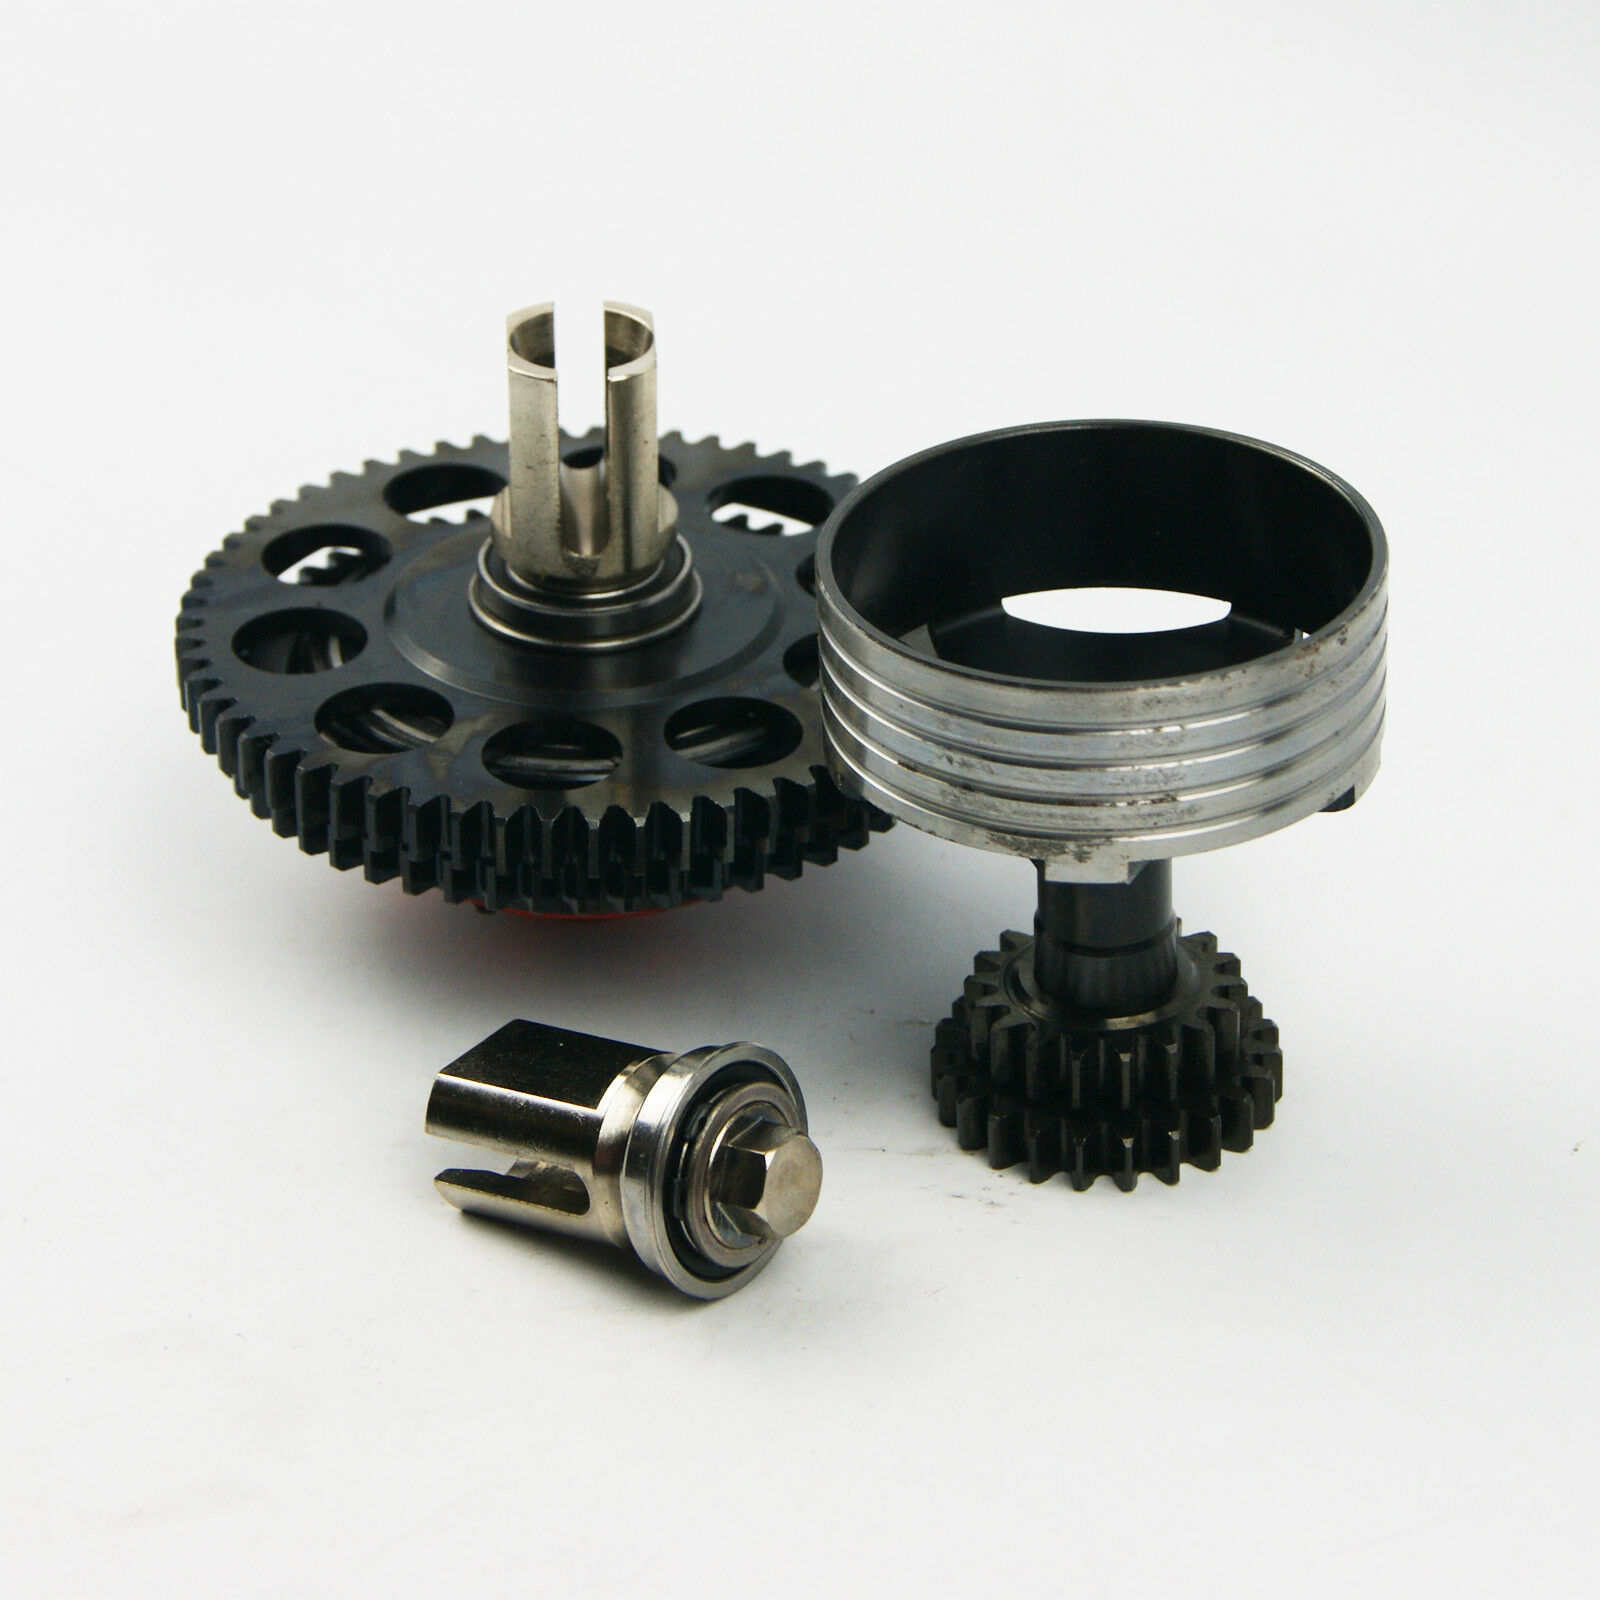 Two 2 Speed Transmission Gear for for losi 5ive t rv X2 LT